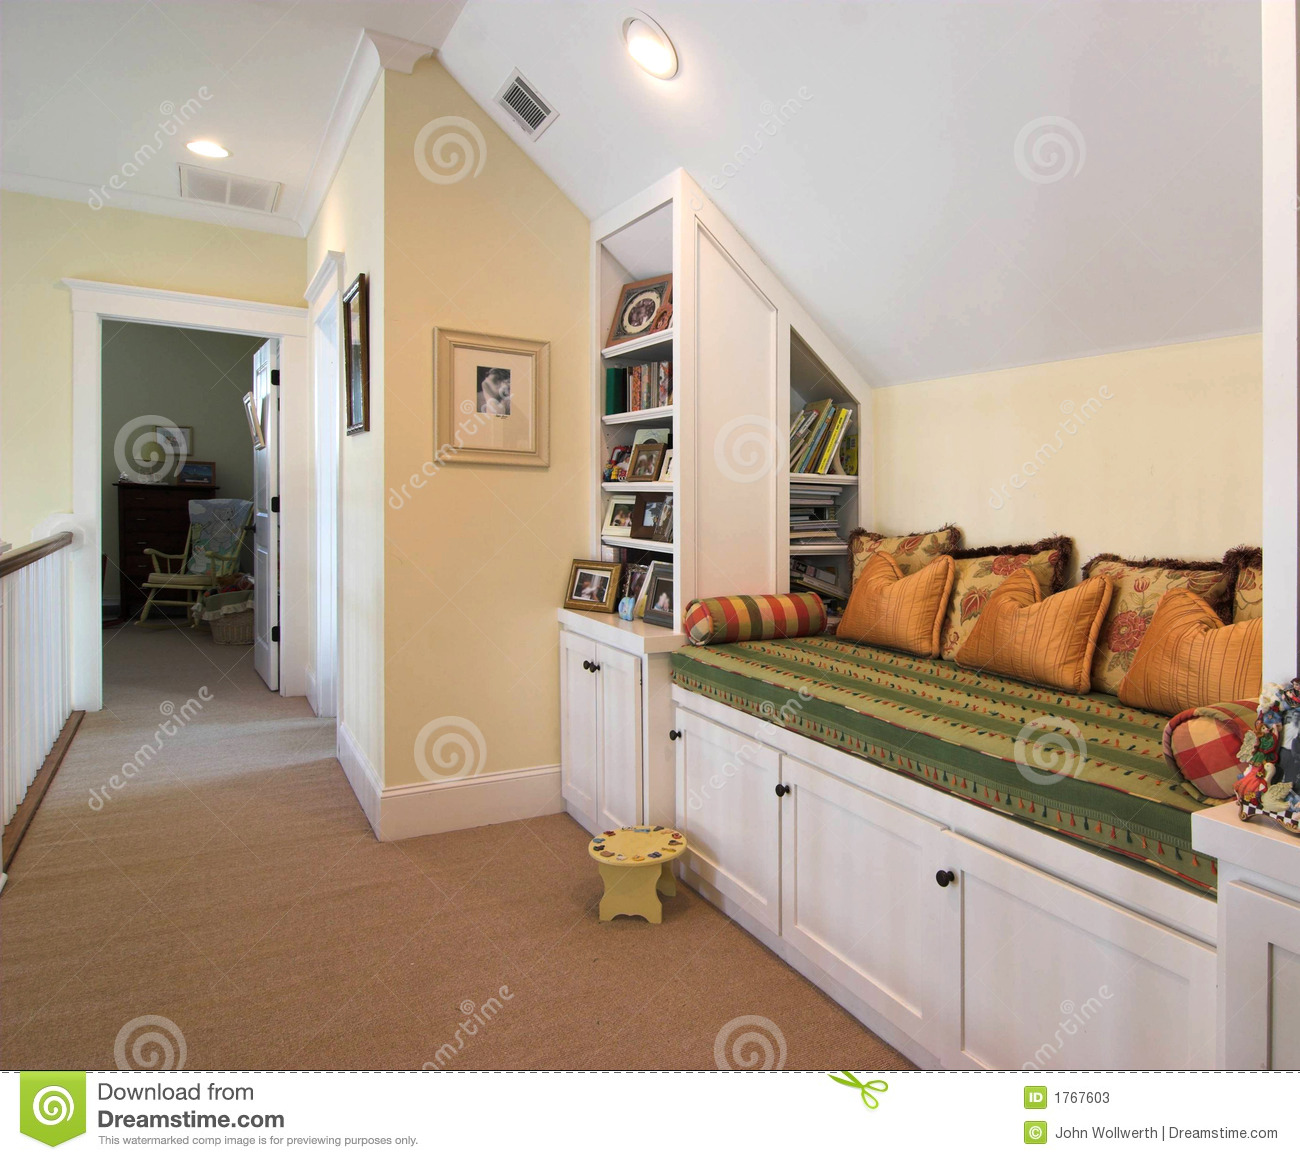 Built In Bench Built In Bench And Nook Stock Photos Image 1767603